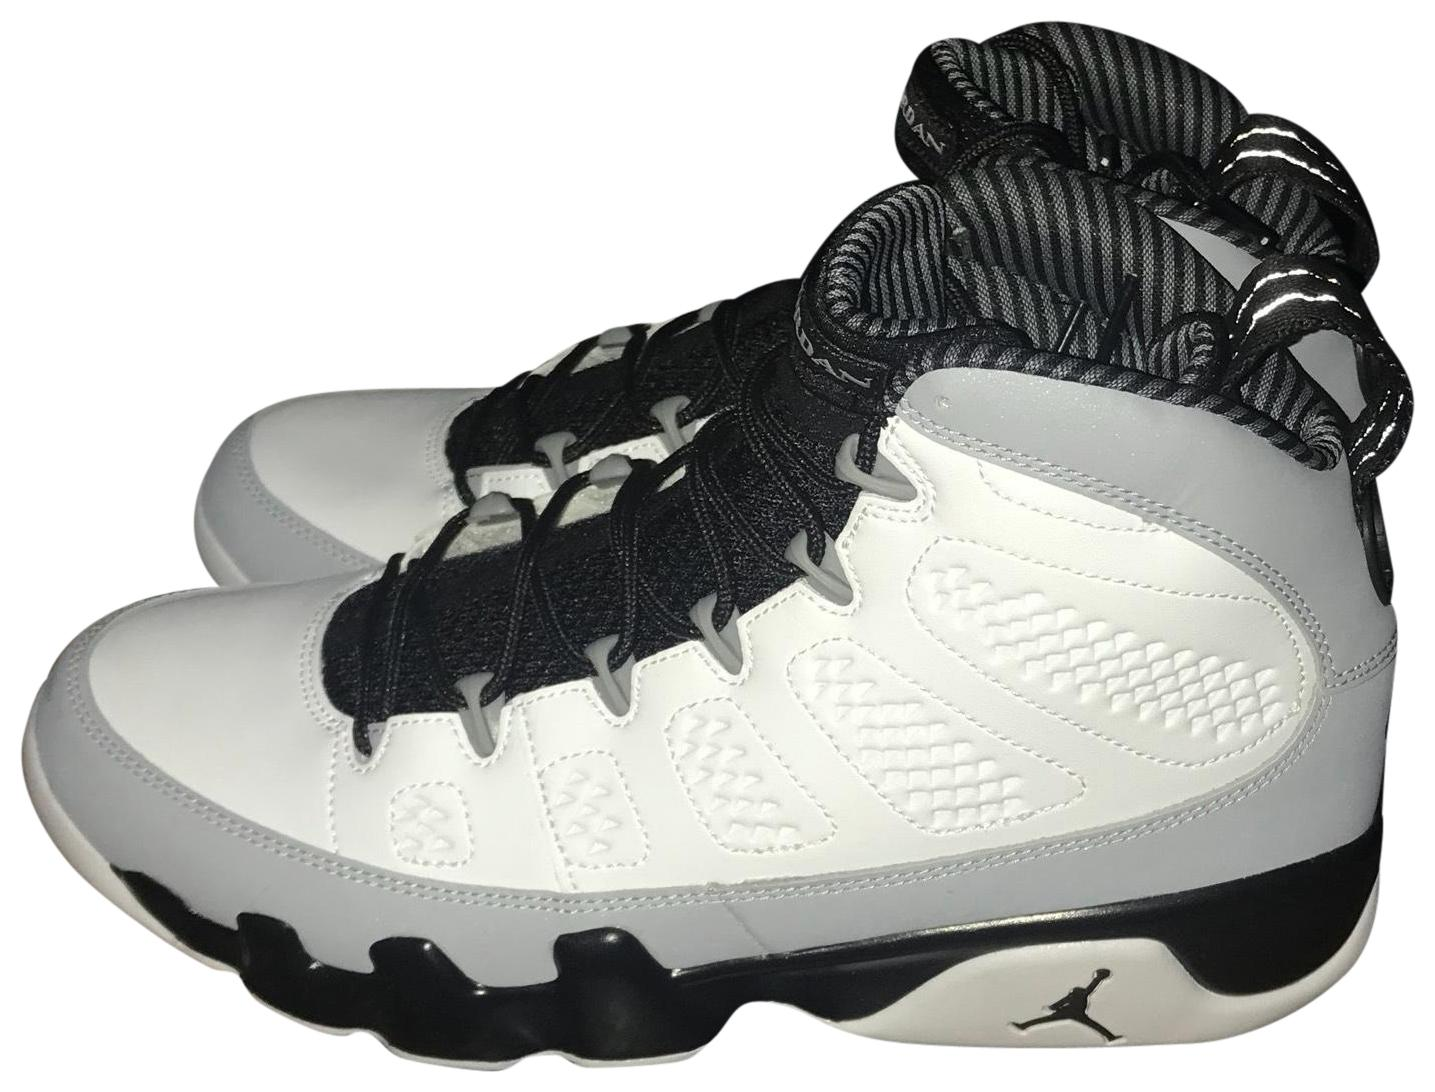 super popular b9c7b e8d68 ... 9 retro barons white and black natural grey for sale bcebf 71945   discount code for air jordan white black wolf grey athletic c3024 0e3a0